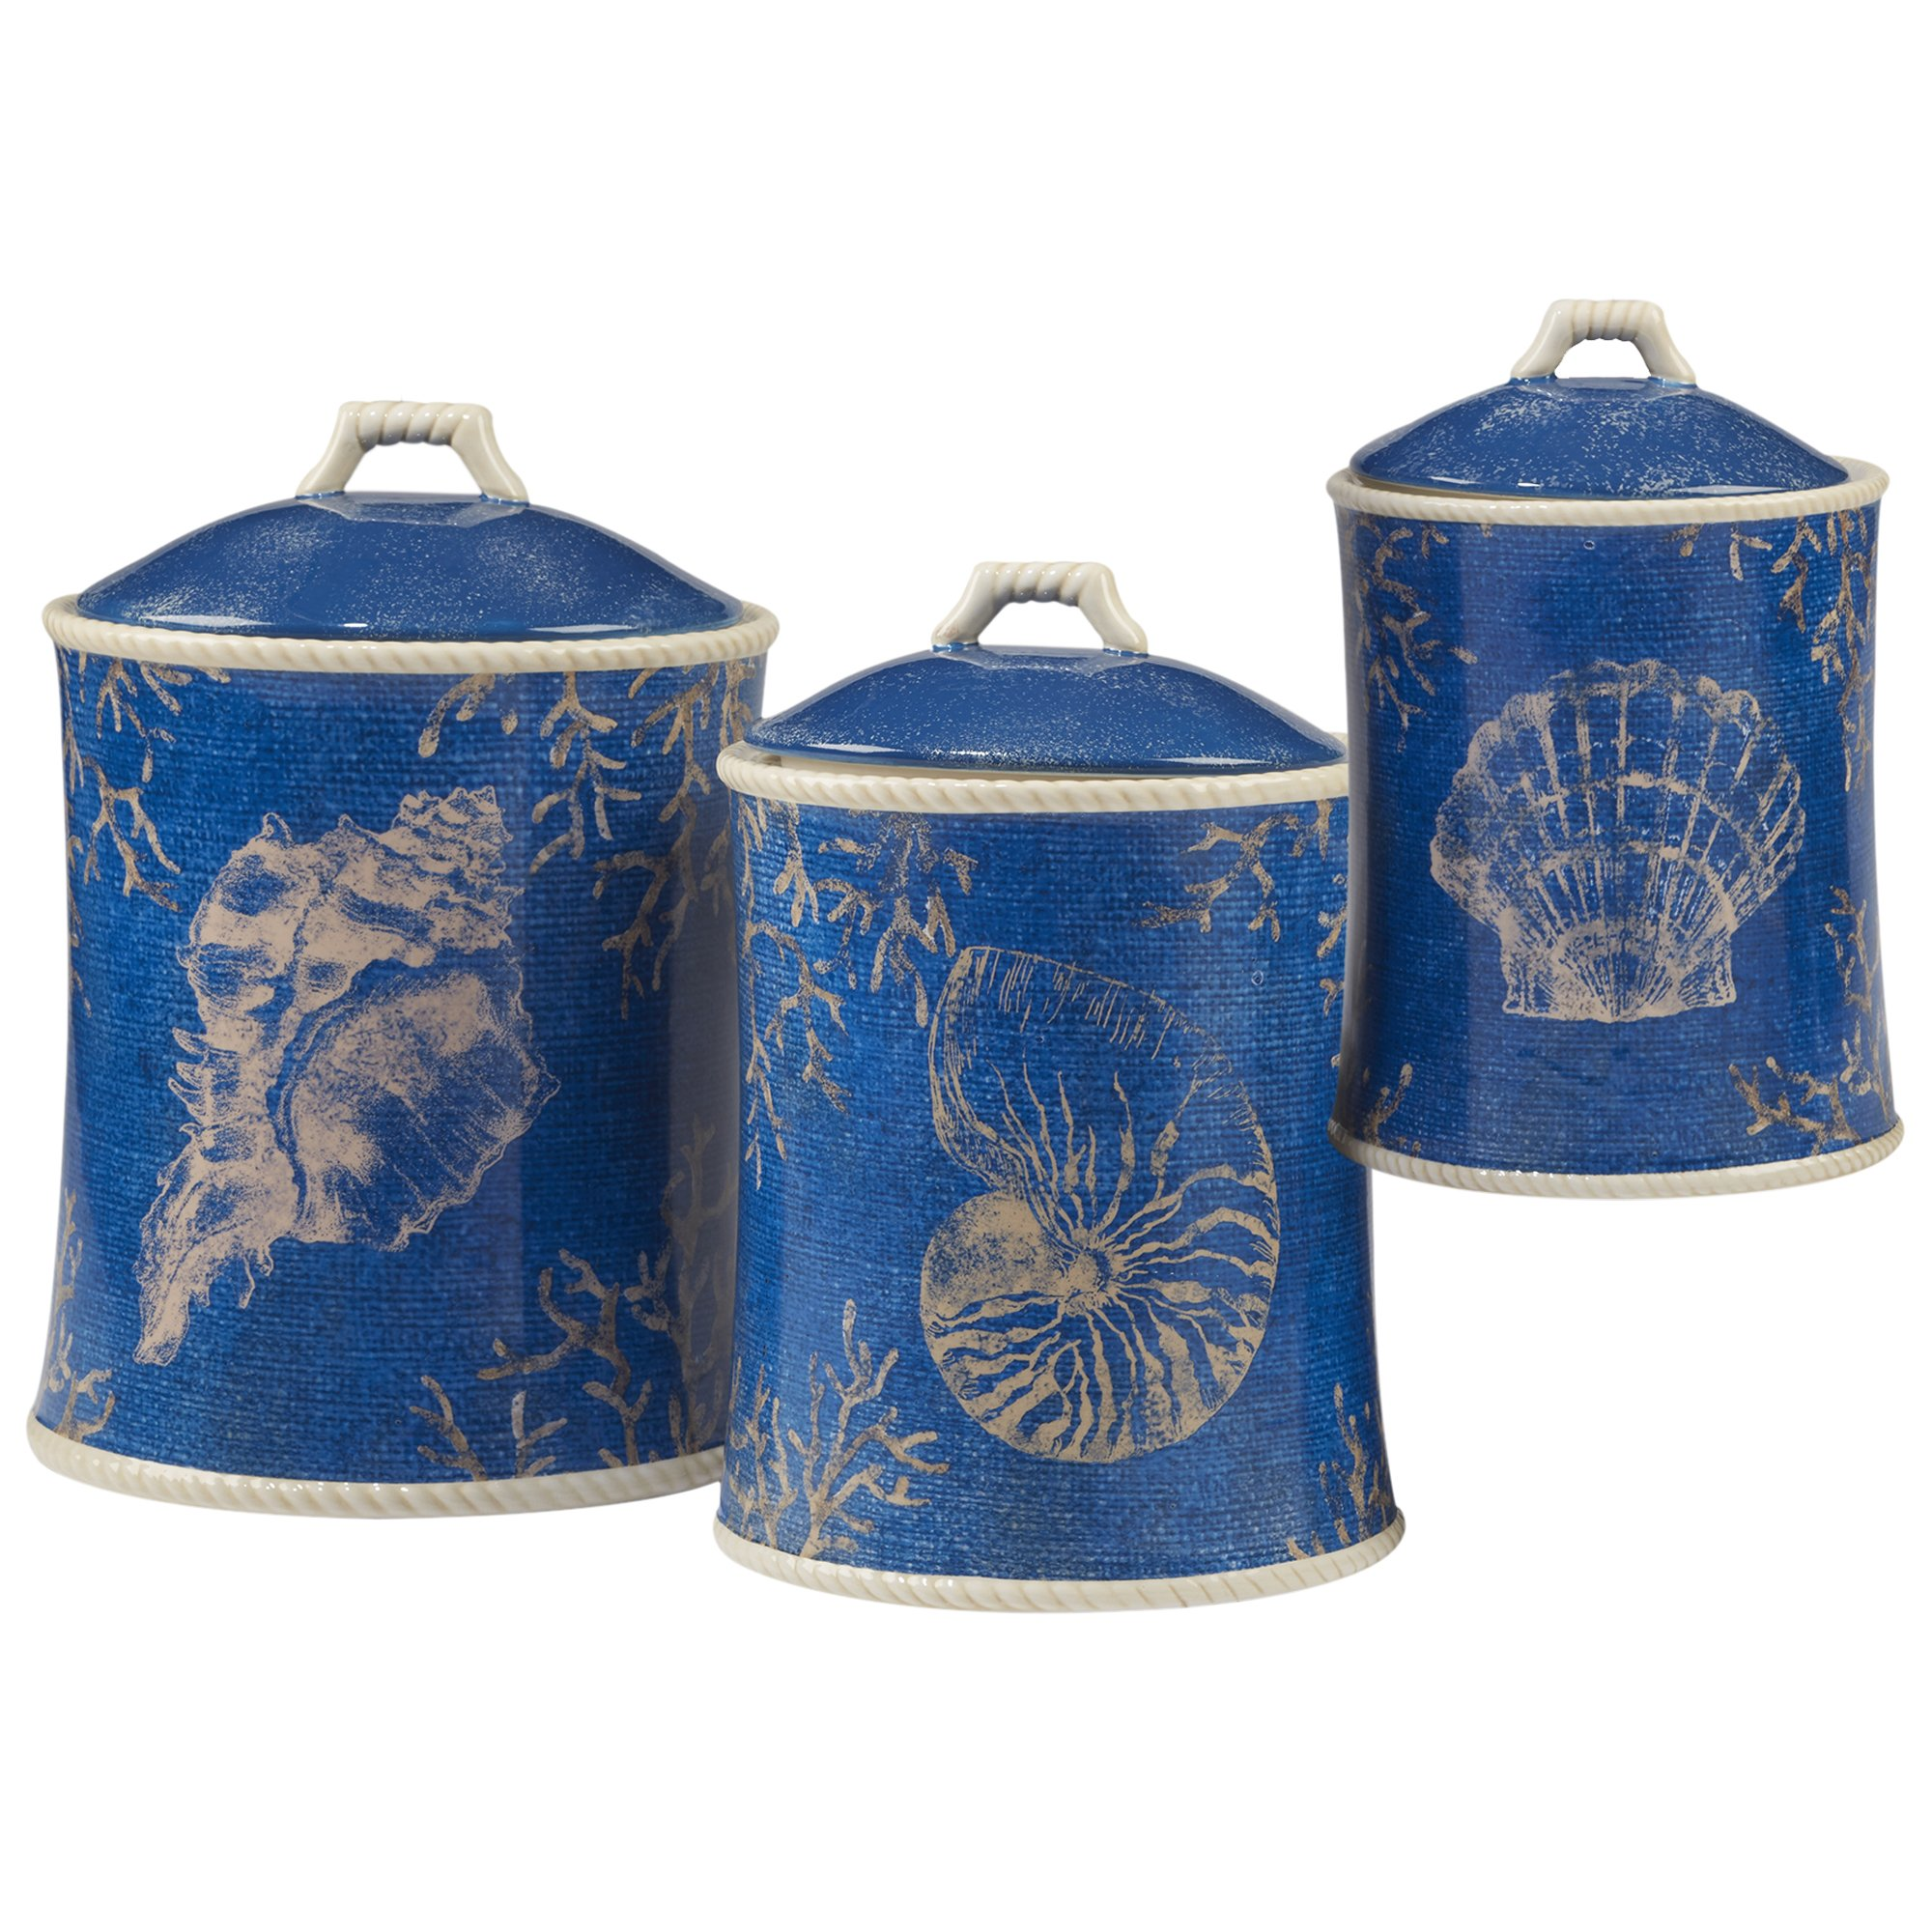 Certified International Corp 23929 Seaside 3 piece Canister Set Multicolor